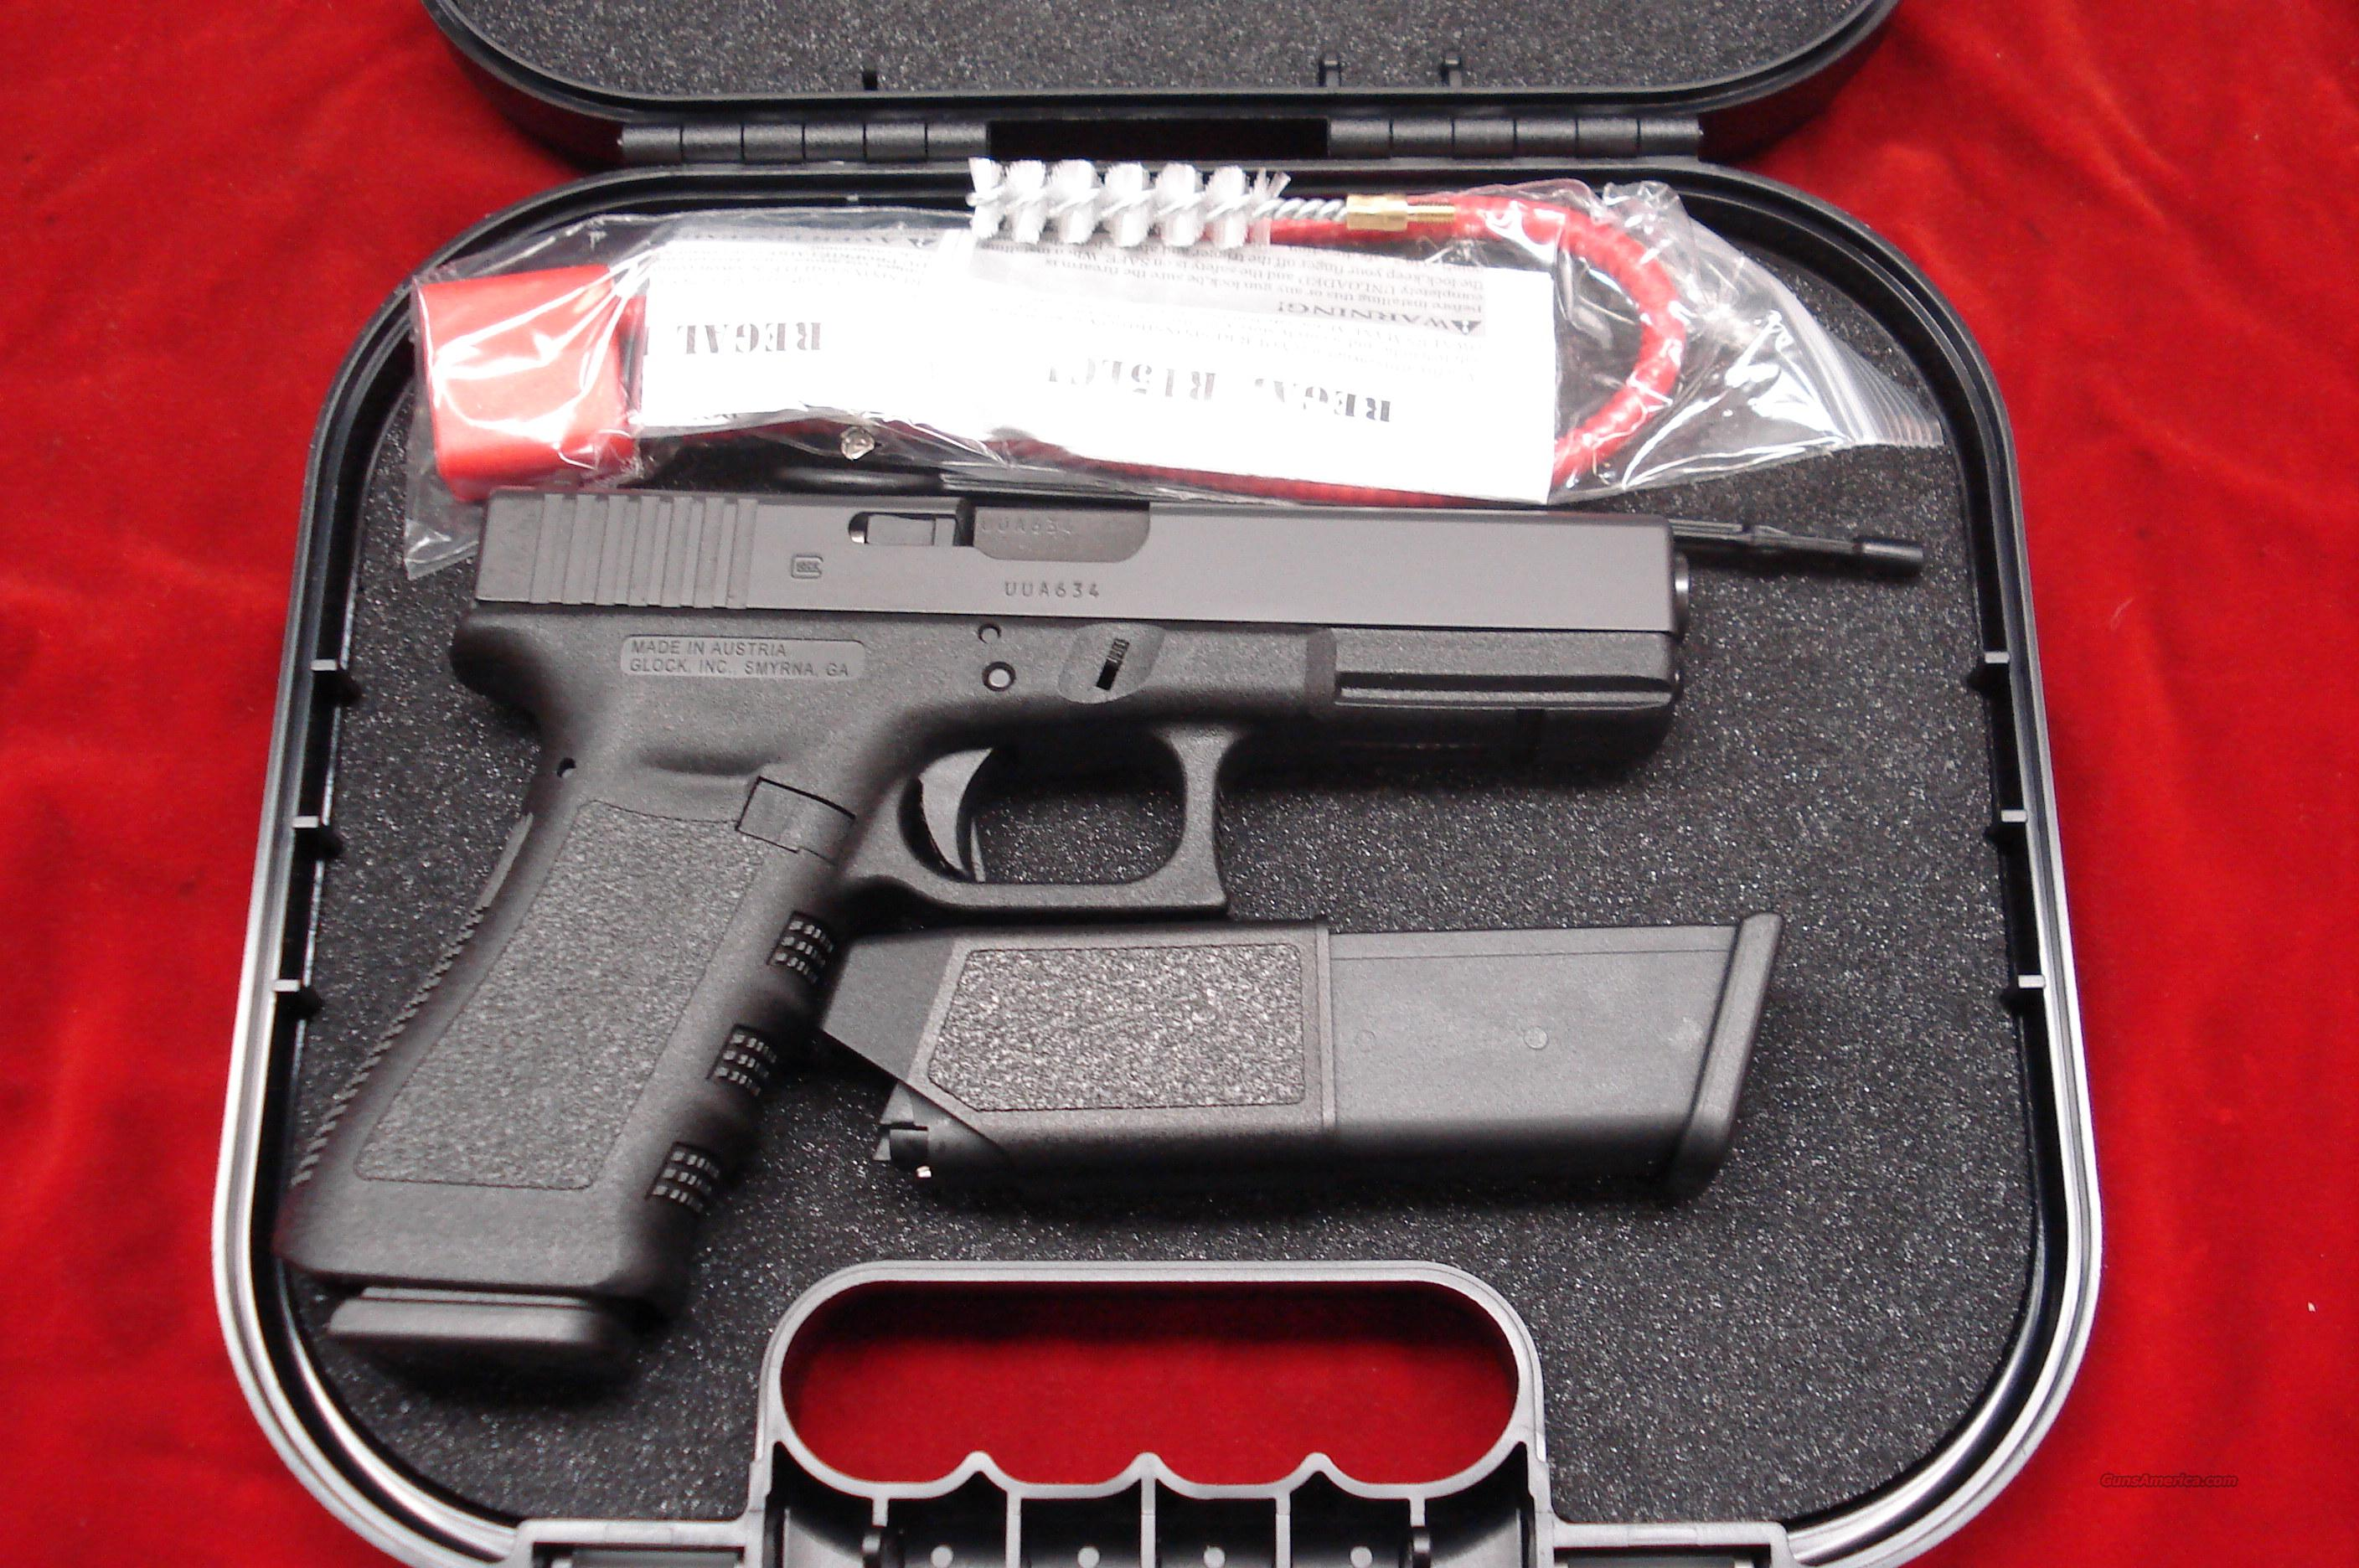 GLOCK MODEL 17 GEN3 9MM NEW   Guns > Pistols > Glock Pistols > 17